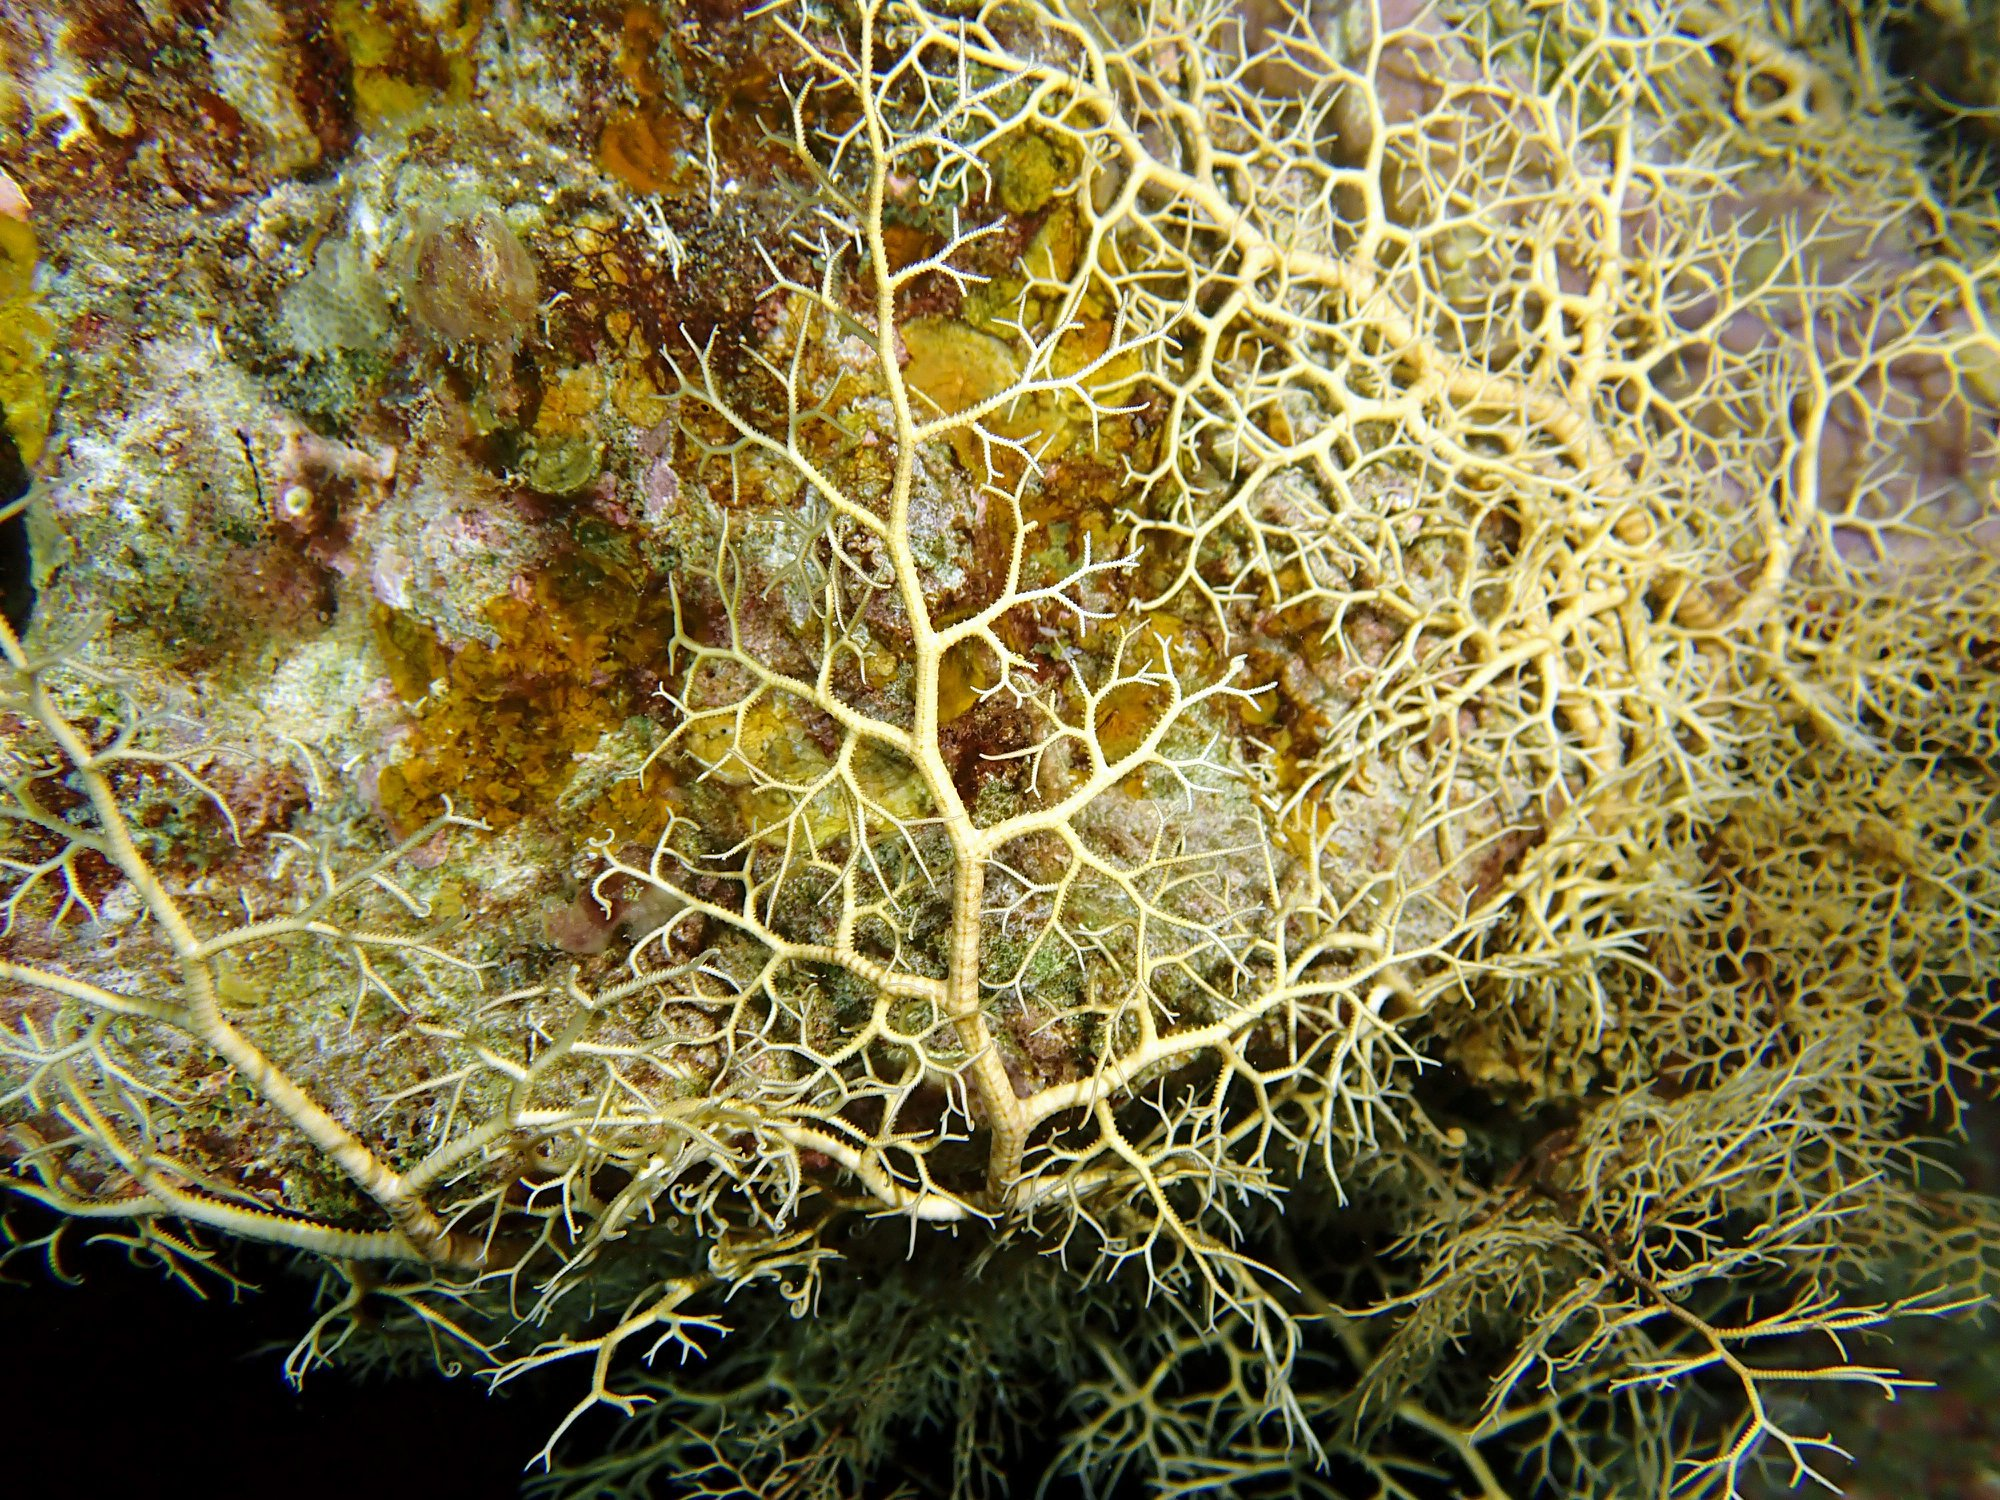 Basket star seen on night dive